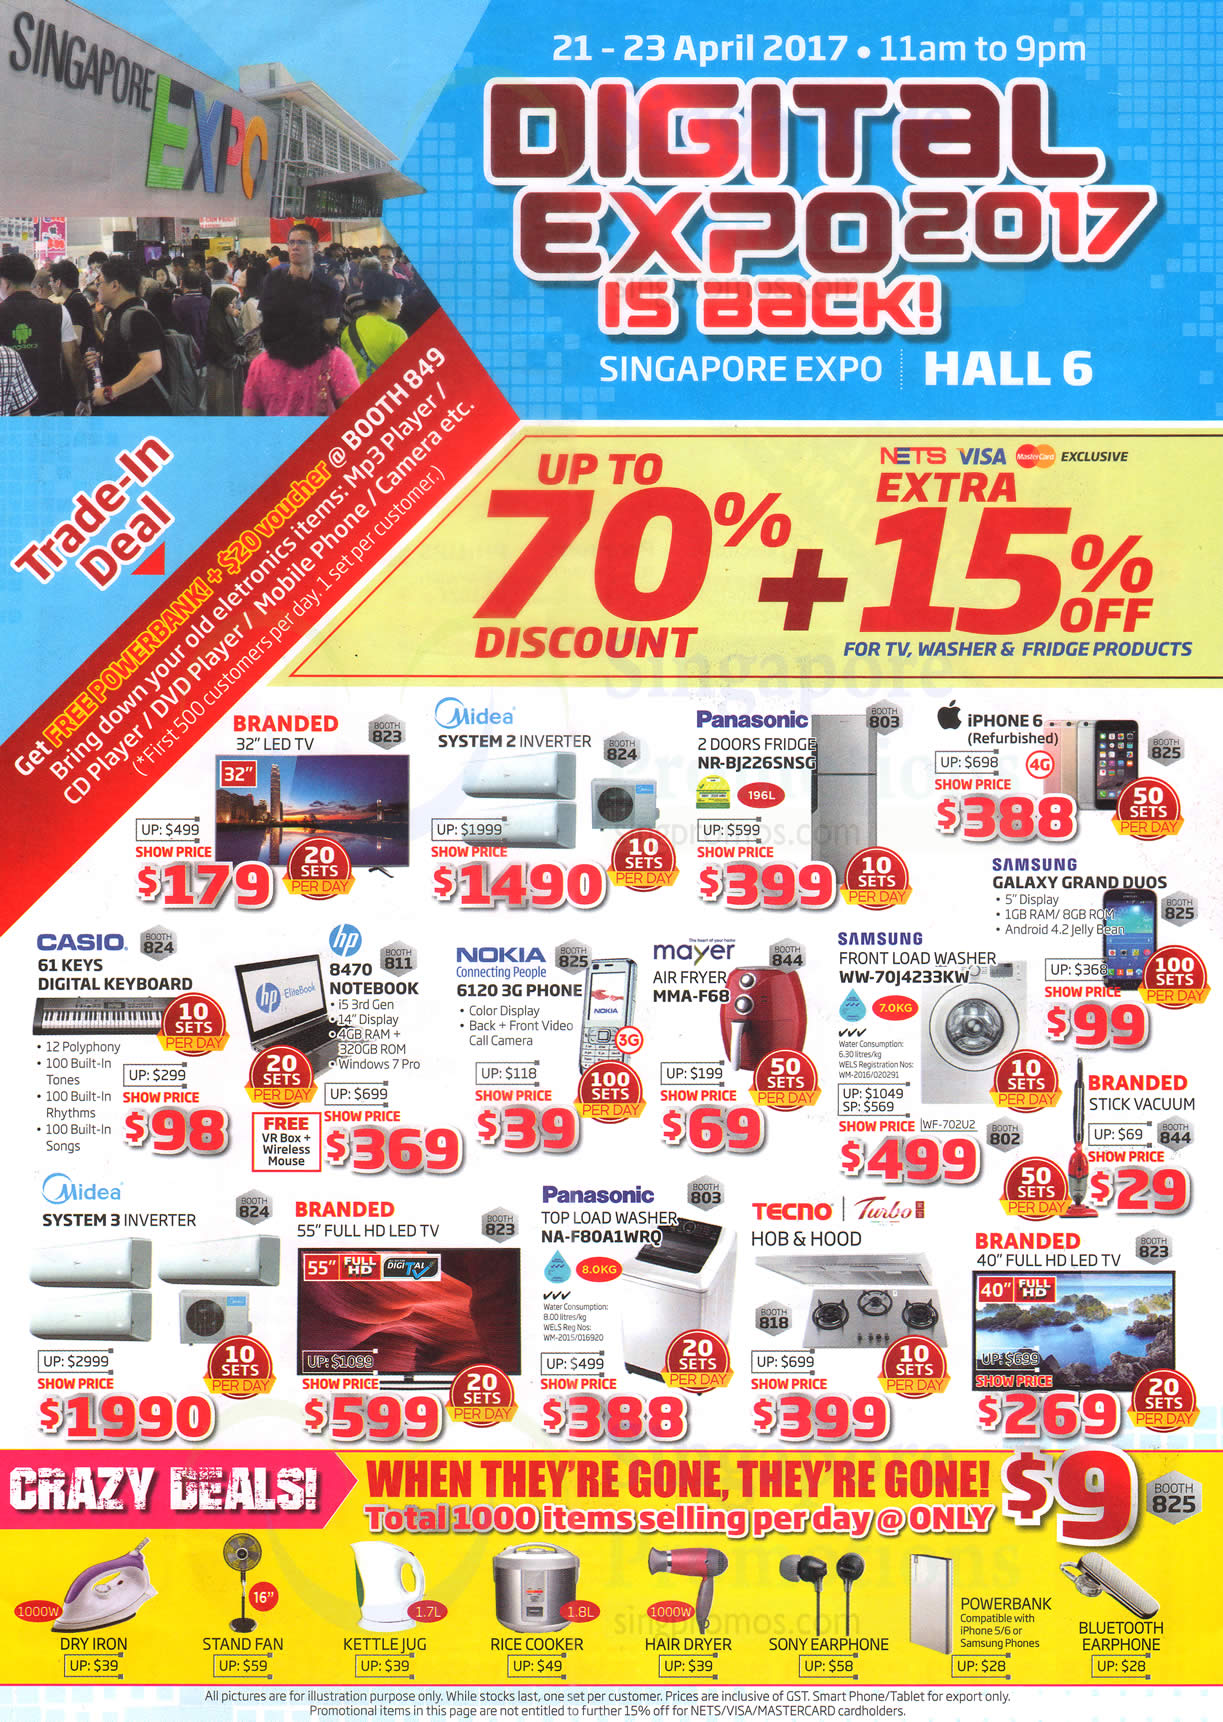 Digital Expo Featured Offers, Crazy Deals 15 Apr 2017